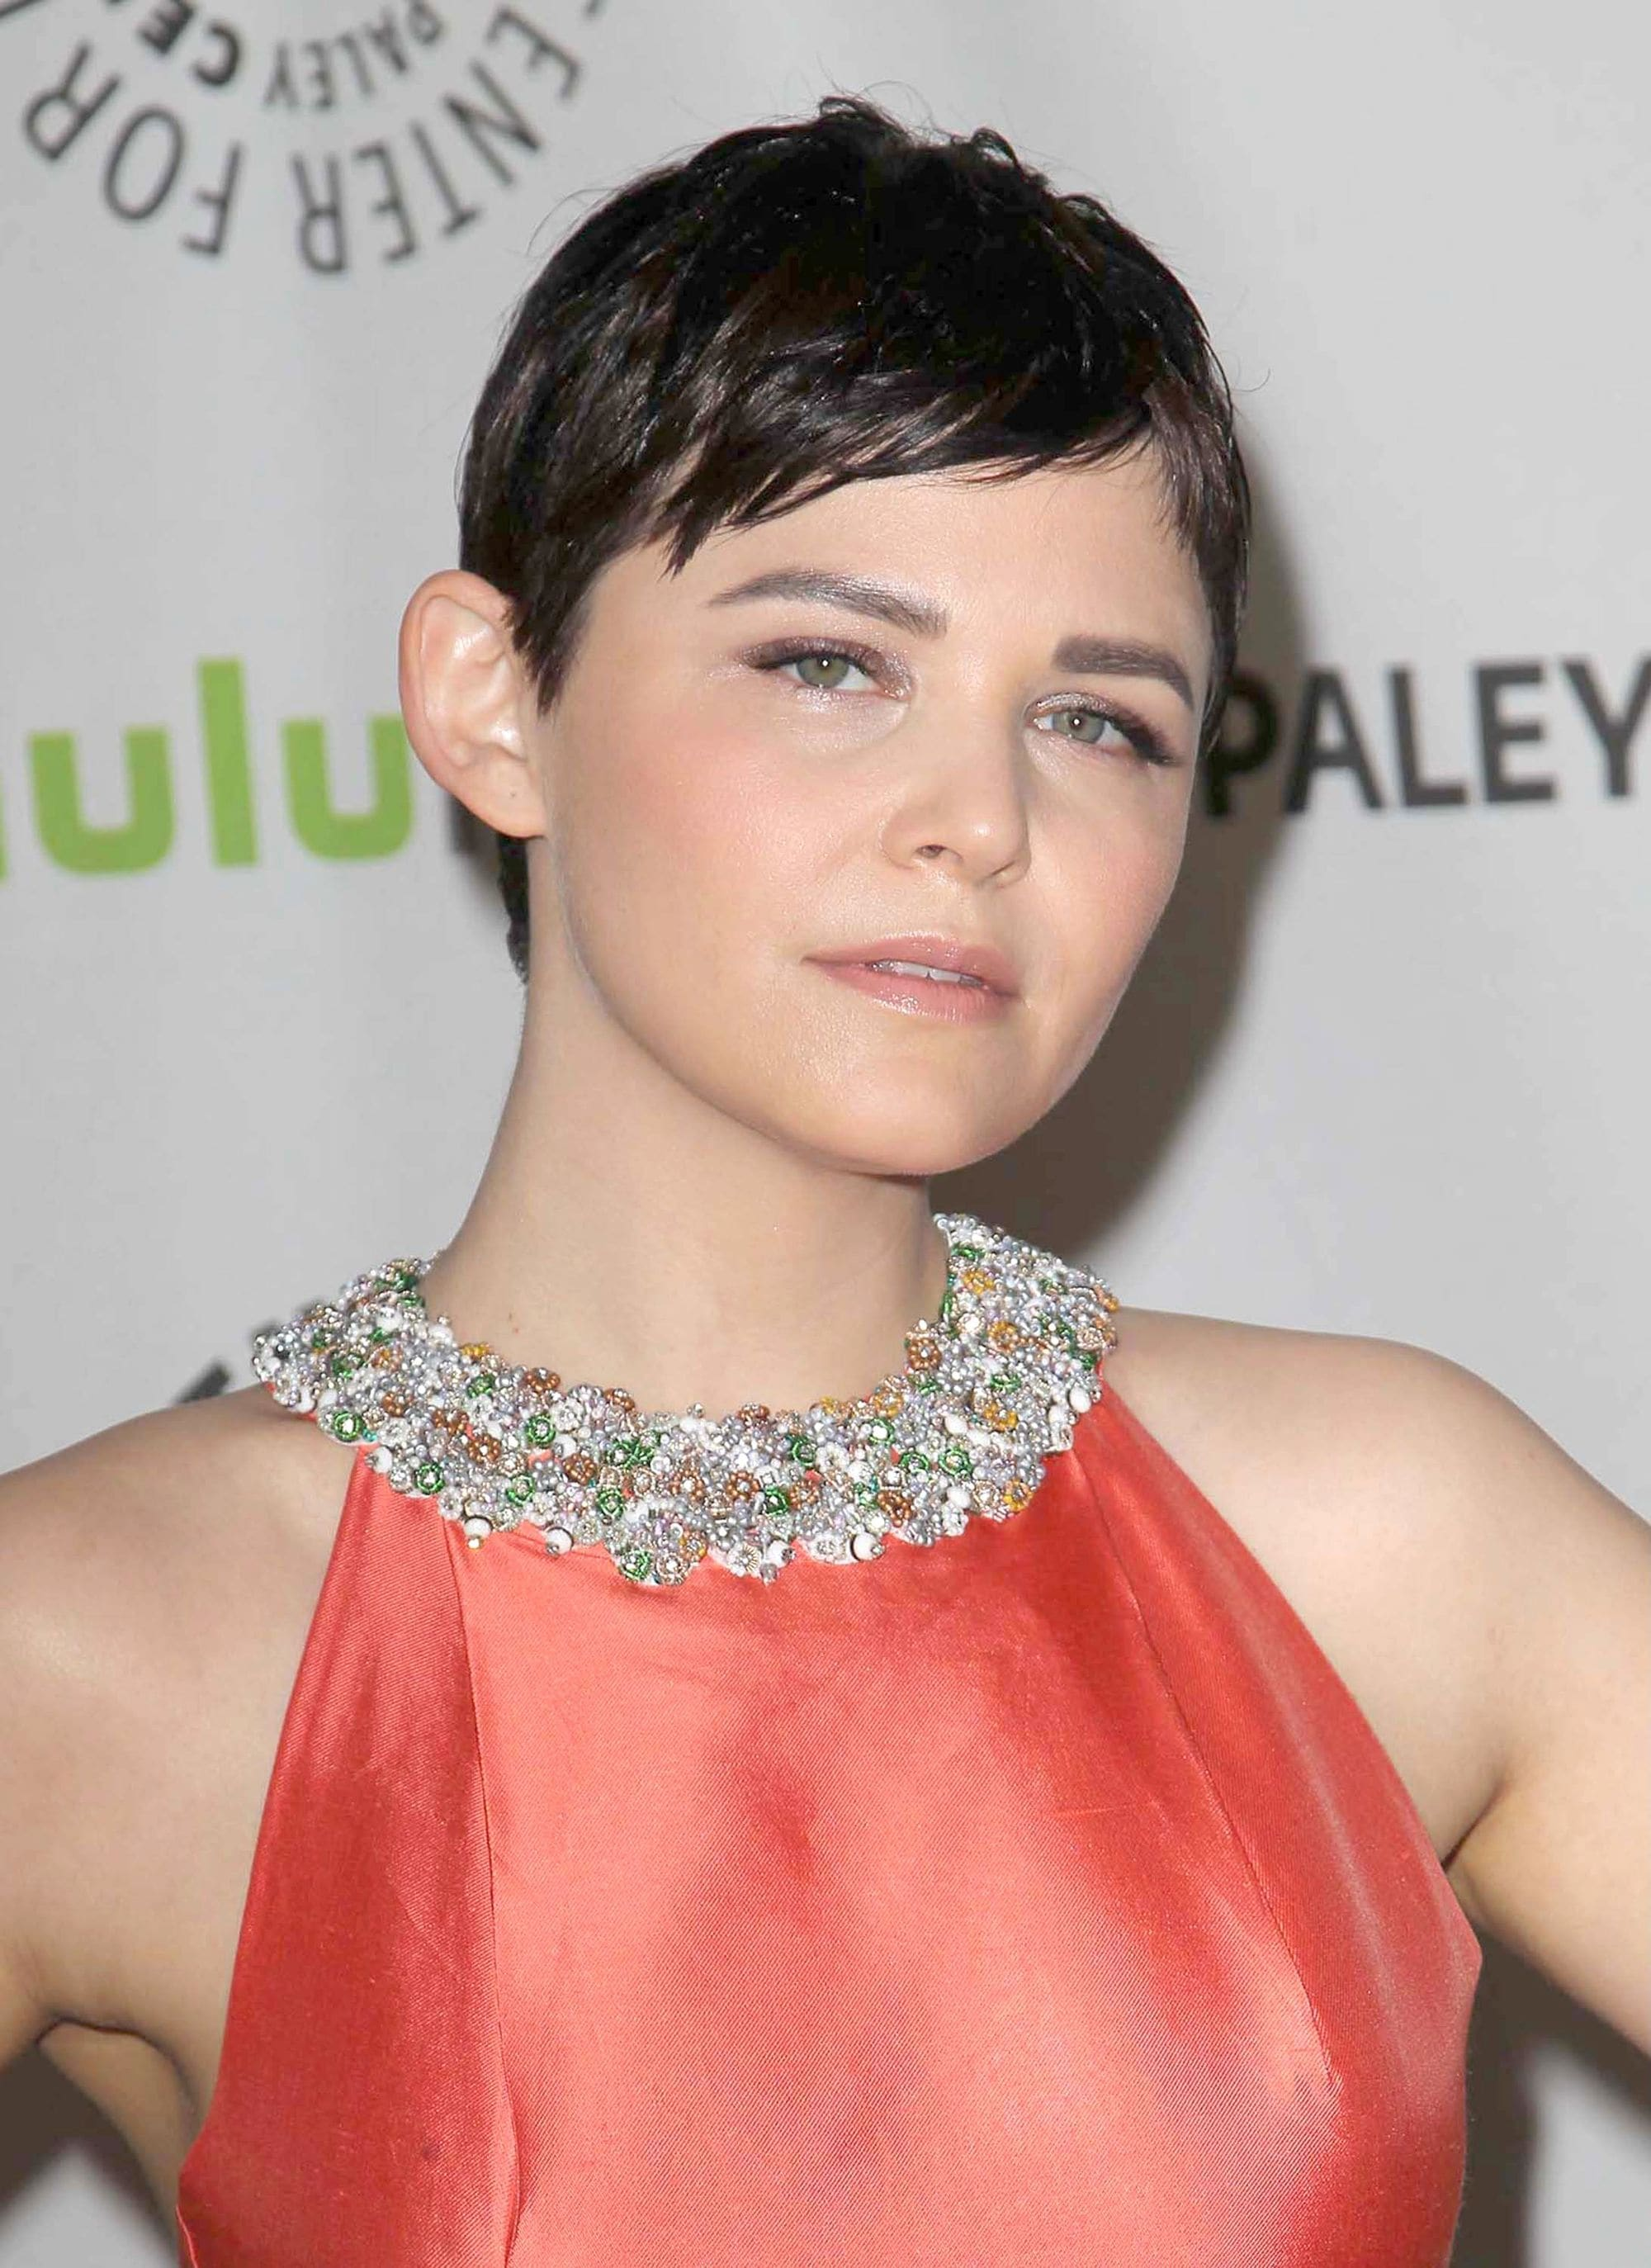 once upon a time actress ginnifer goodwin with a short pixie crop and textured bangs